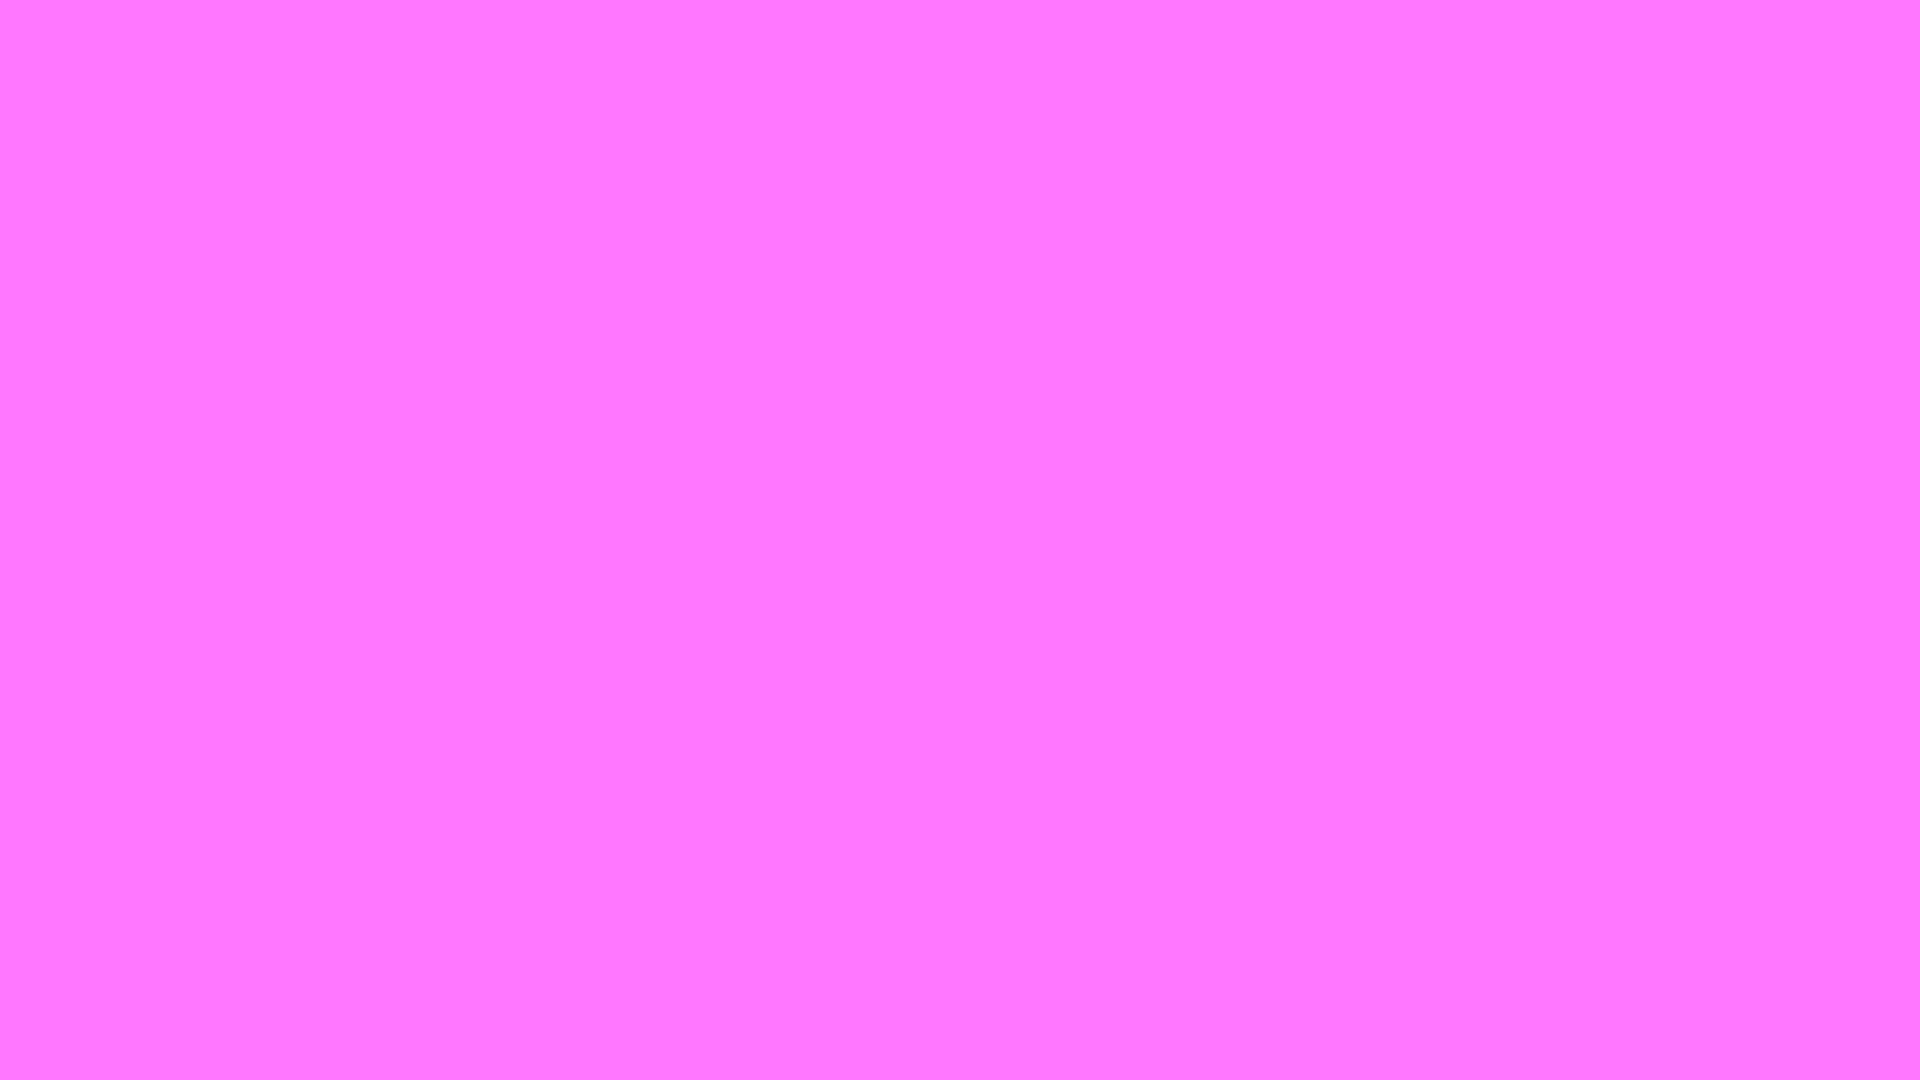 1920x1080 Fuchsia Pink Solid Color Background